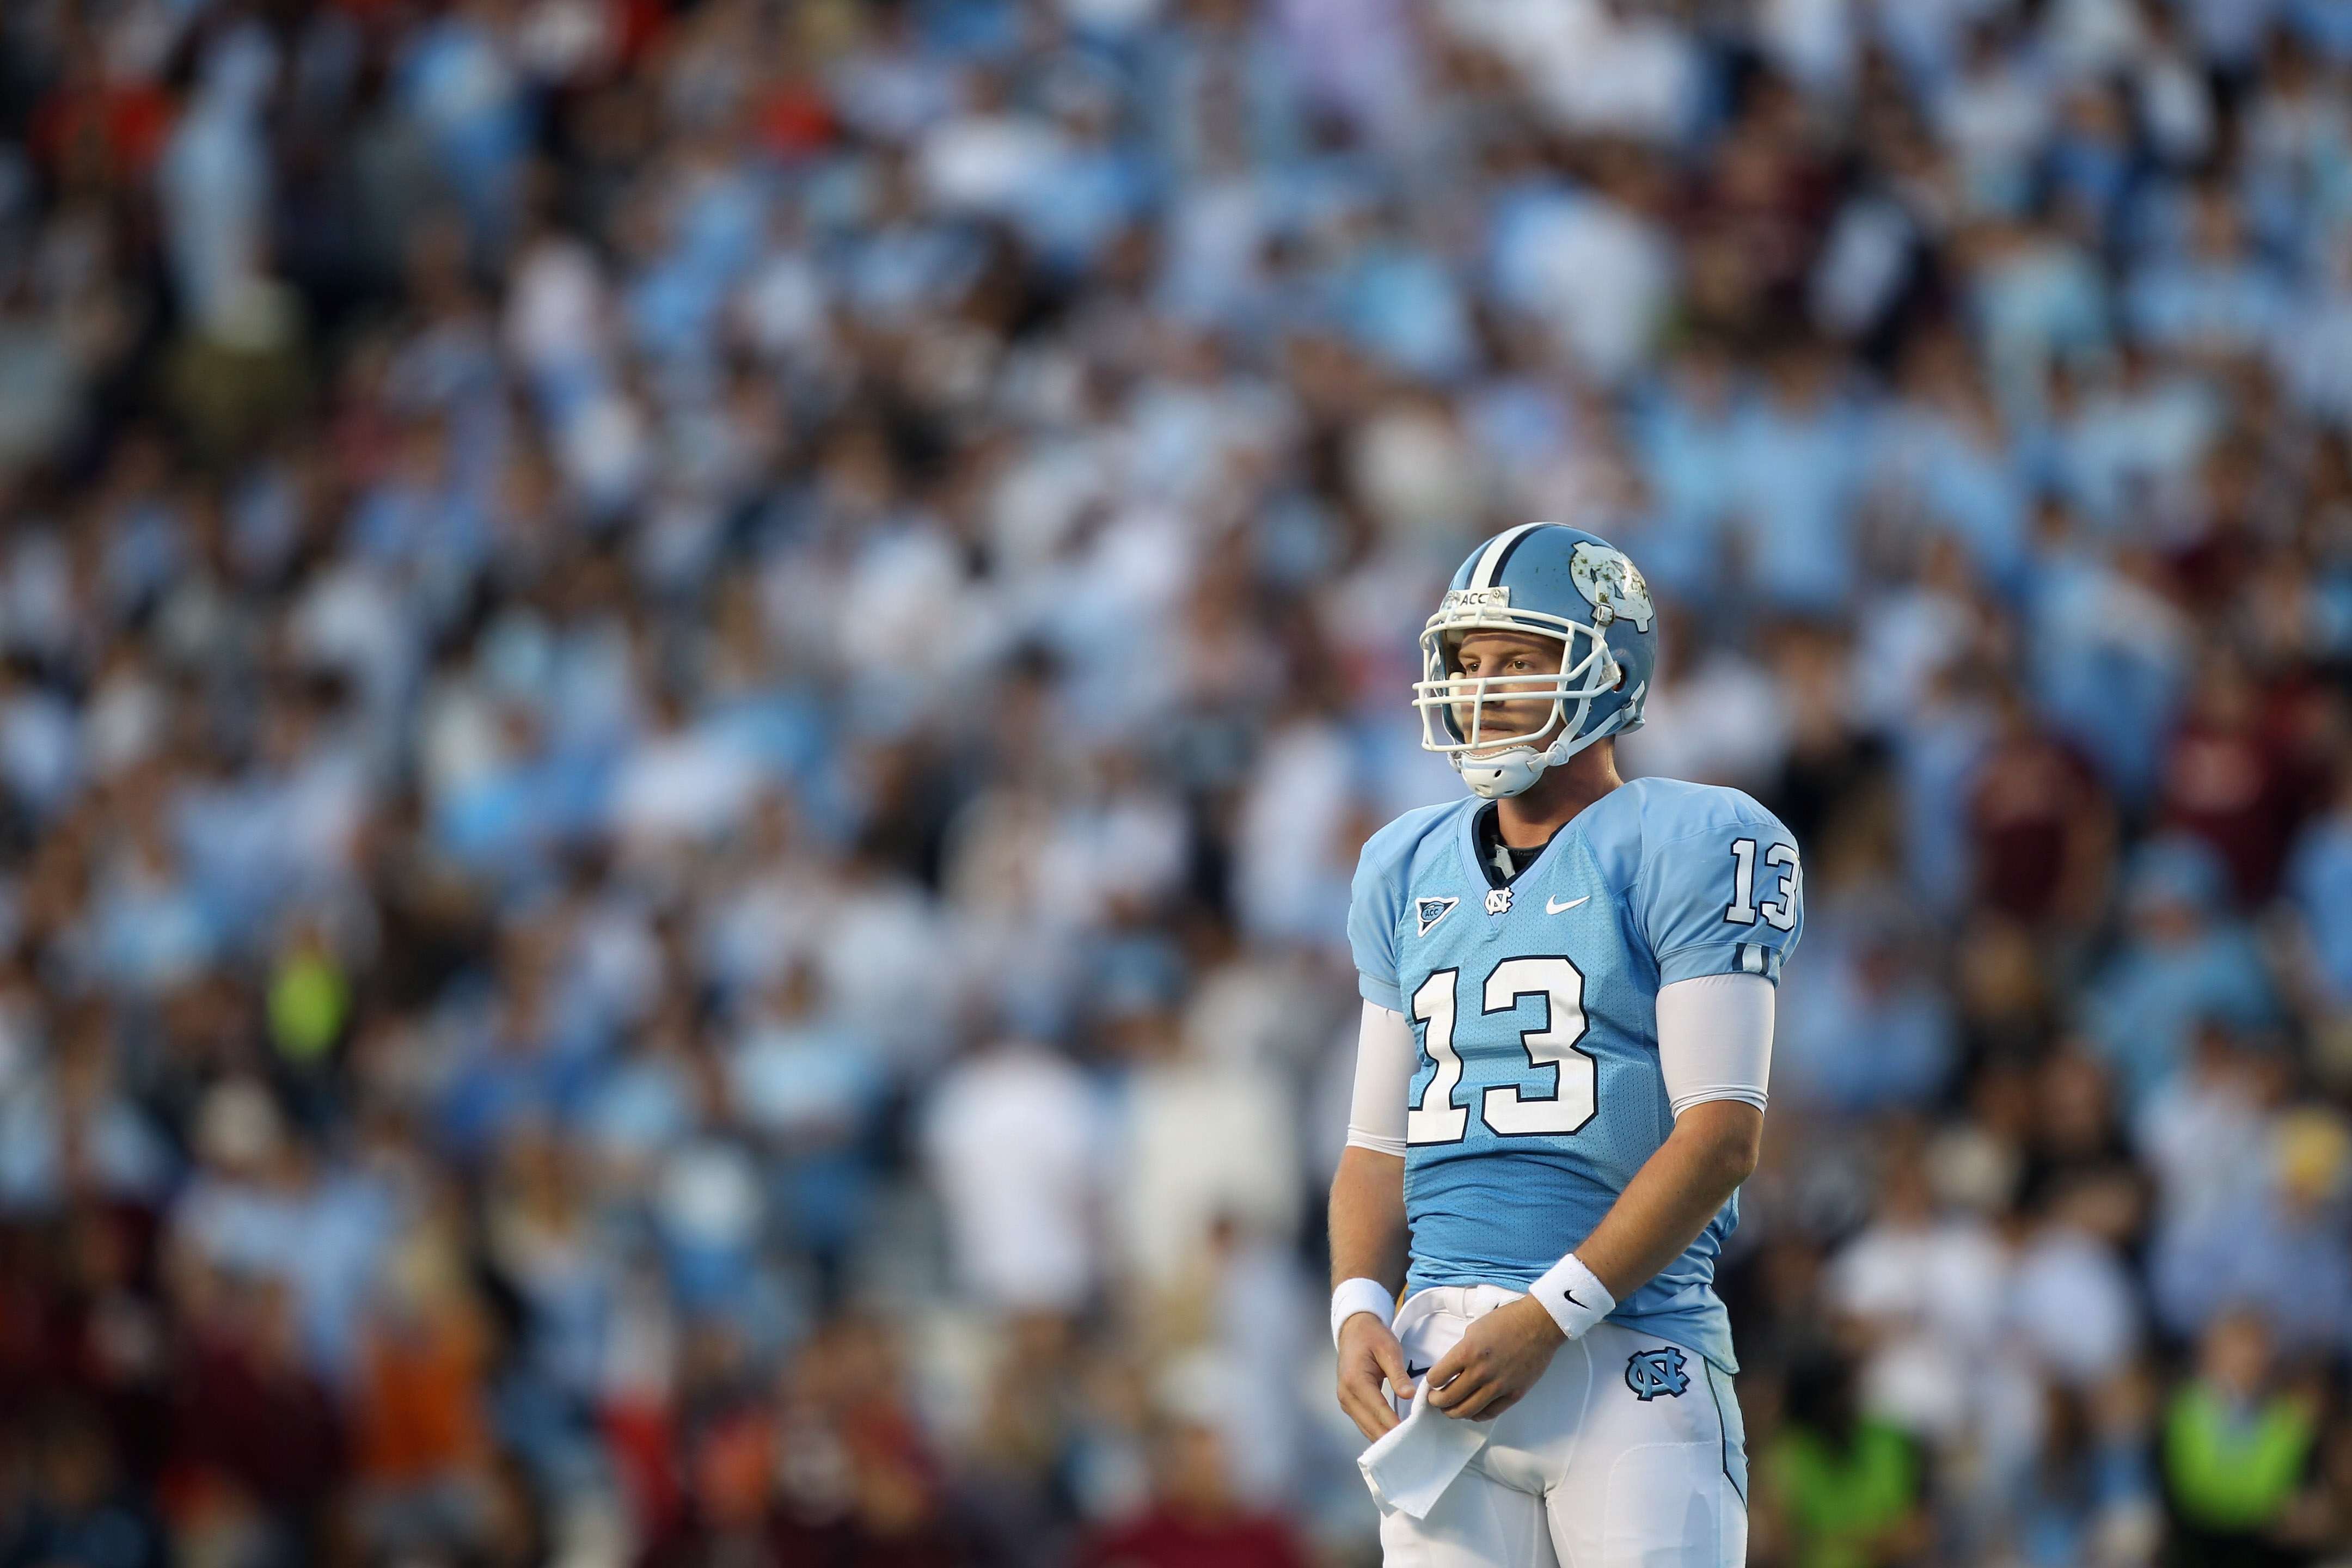 CHAPEL HILL, NC - NOVEMBER 13:  T.J. Yates #13 of the North Carolina Tar Heels waits for a play from the sidelines against the Virginia Tech Hokies during their game at Kenan Stadium on November 13, 2010 in Chapel Hill, North Carolina.  (Photo by Streeter